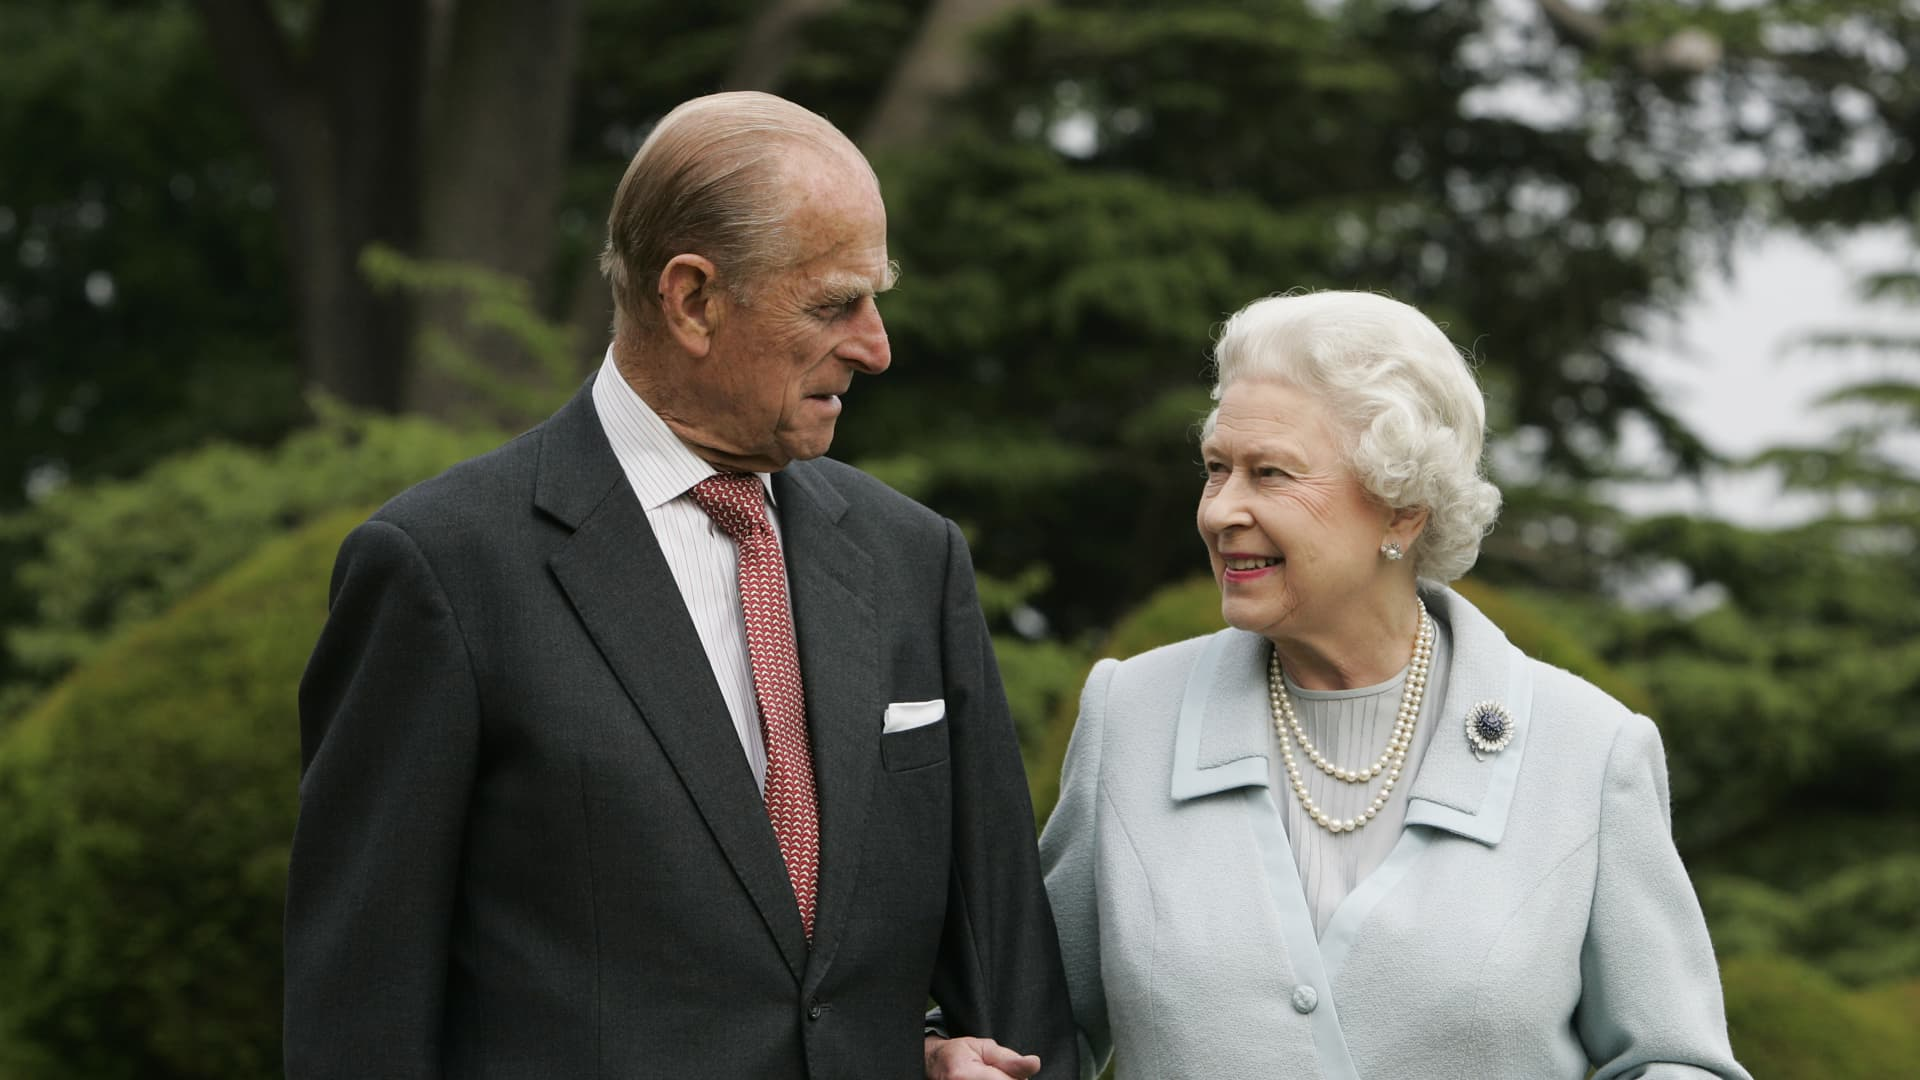 In this image made available Nov. 18, 2007, Queen Elizabeth II and Prince Philip revisit Broadlands to mark their diamond wedding anniversary on Nov. 20.